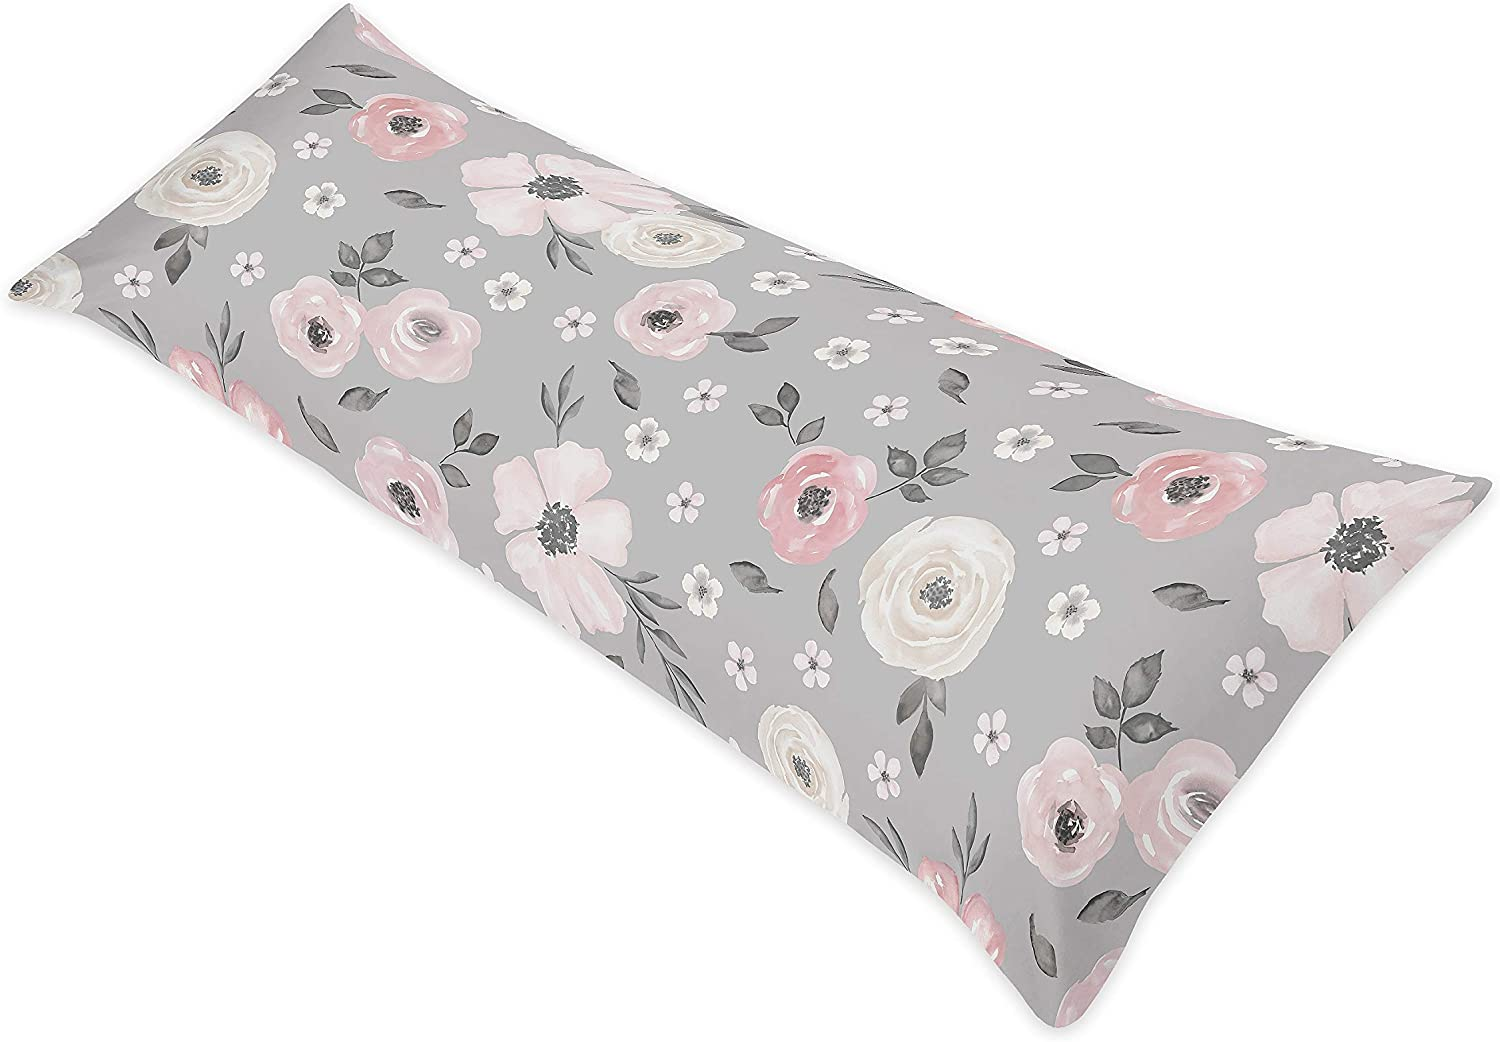 Sweet Jojo Designs Grey Watercolor Floral Body Pillow Case Cover (Pillow Not Included) - Blush Pink Gray and White Shabby Chic Rose Flower Polka Dot Farmhouse